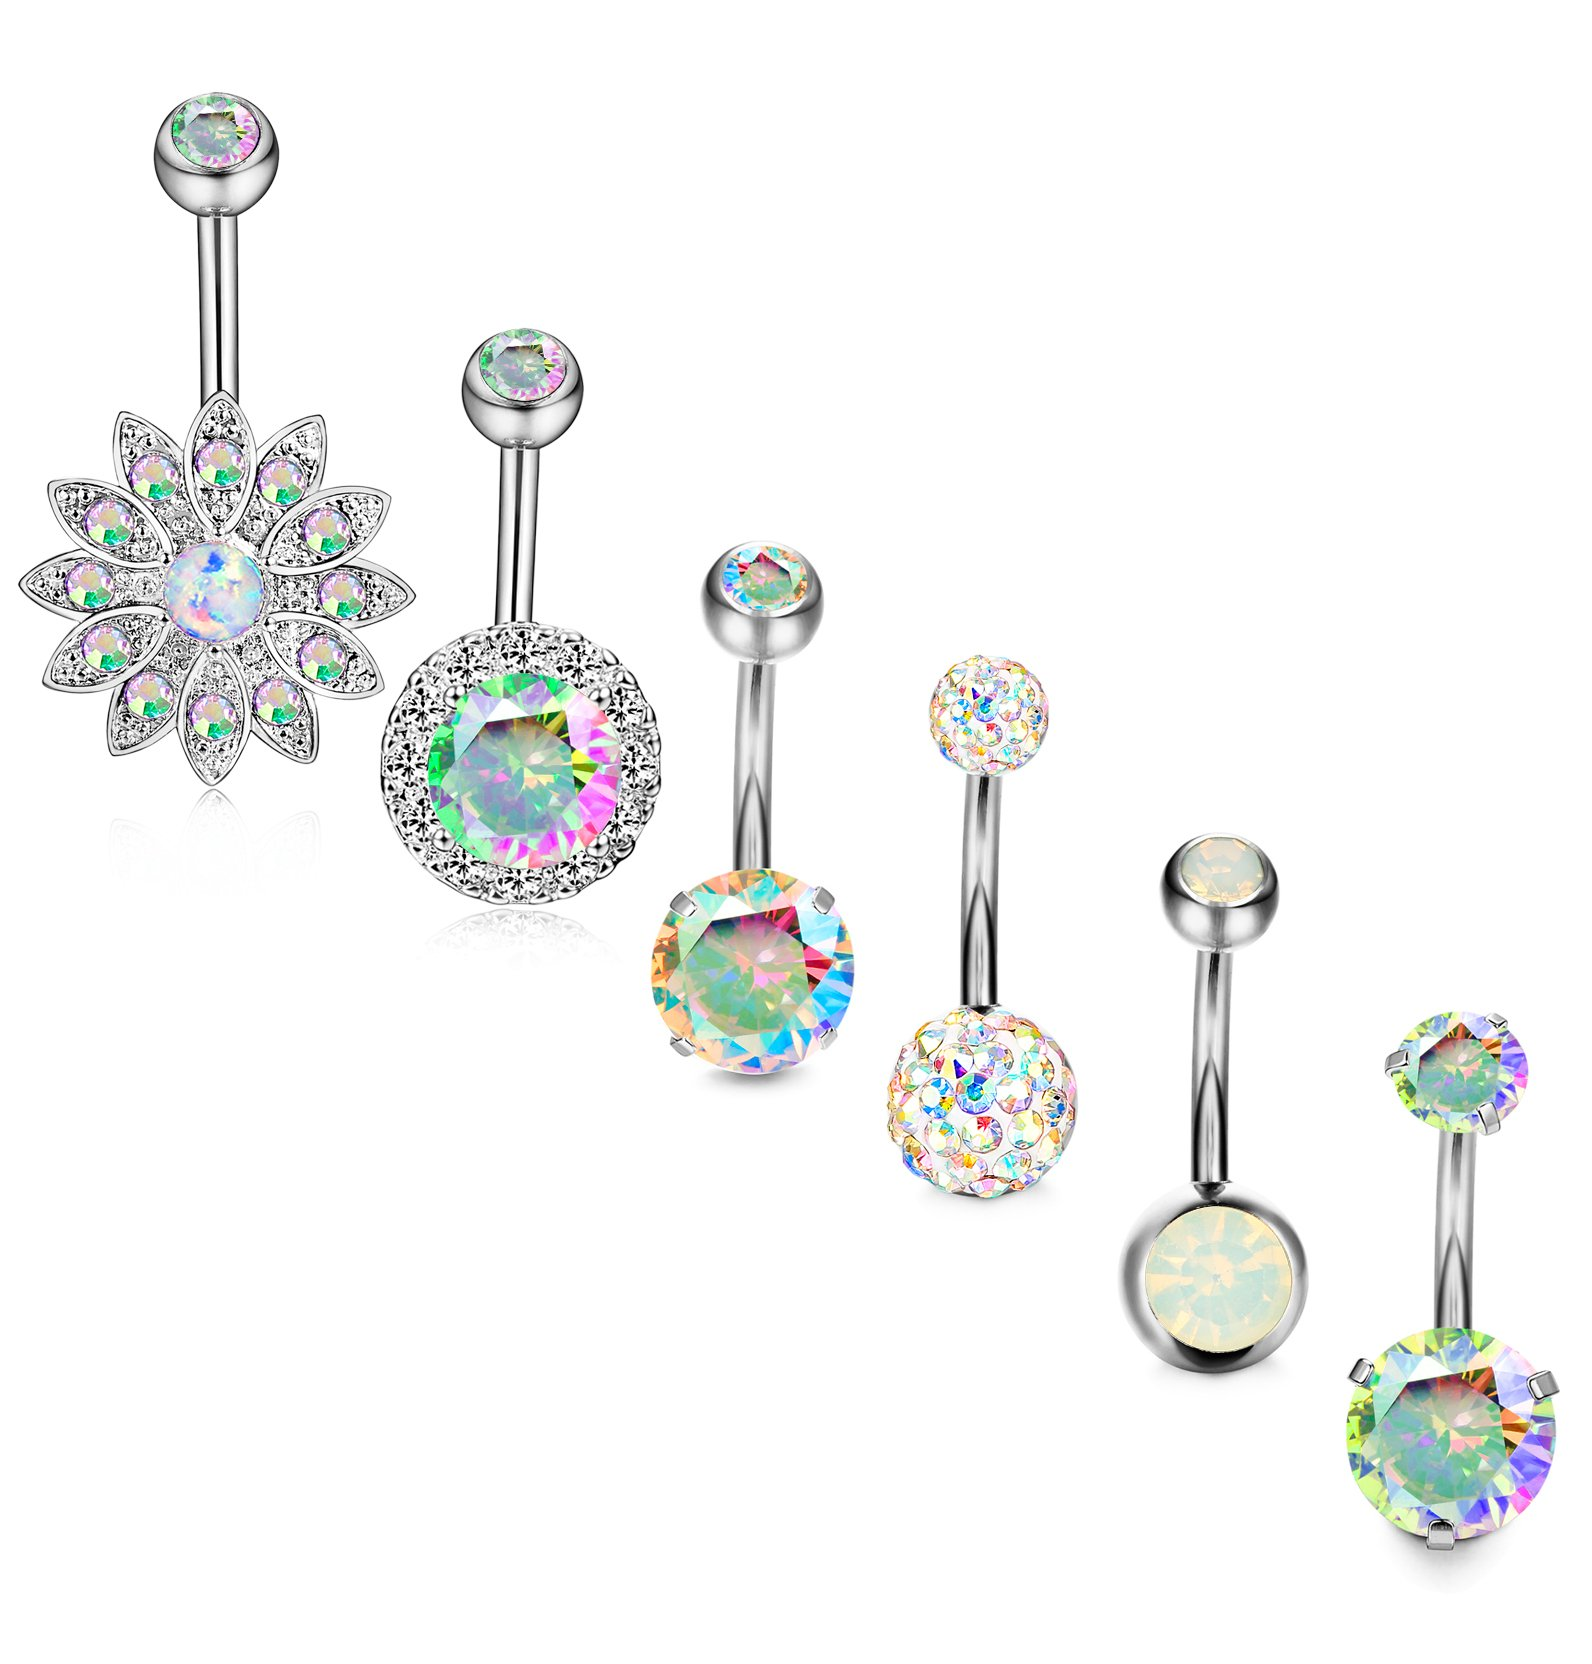 Thunaraz 5-10pcs 14G Stainless Steel Belly Button Rings for Women Crystal CZ Ball Screw Navel Bars (C:6Pcs colorful-tone)